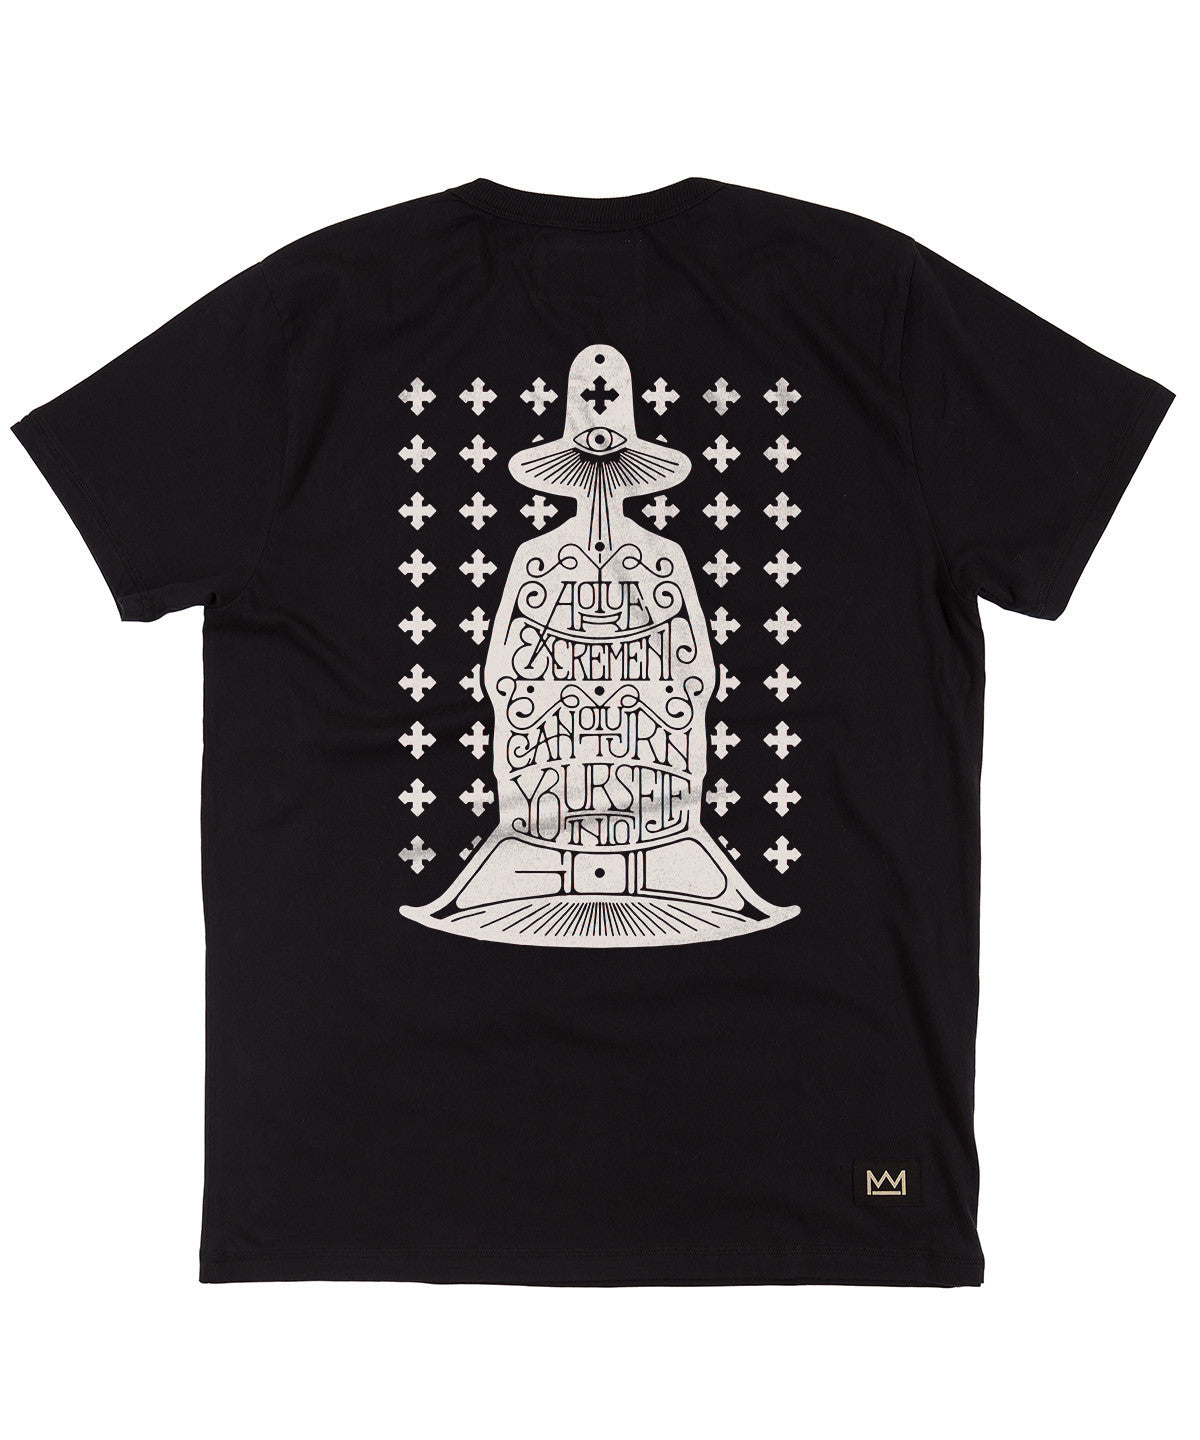 Daren Newman 'Holy Mountain' T-Shirt Black